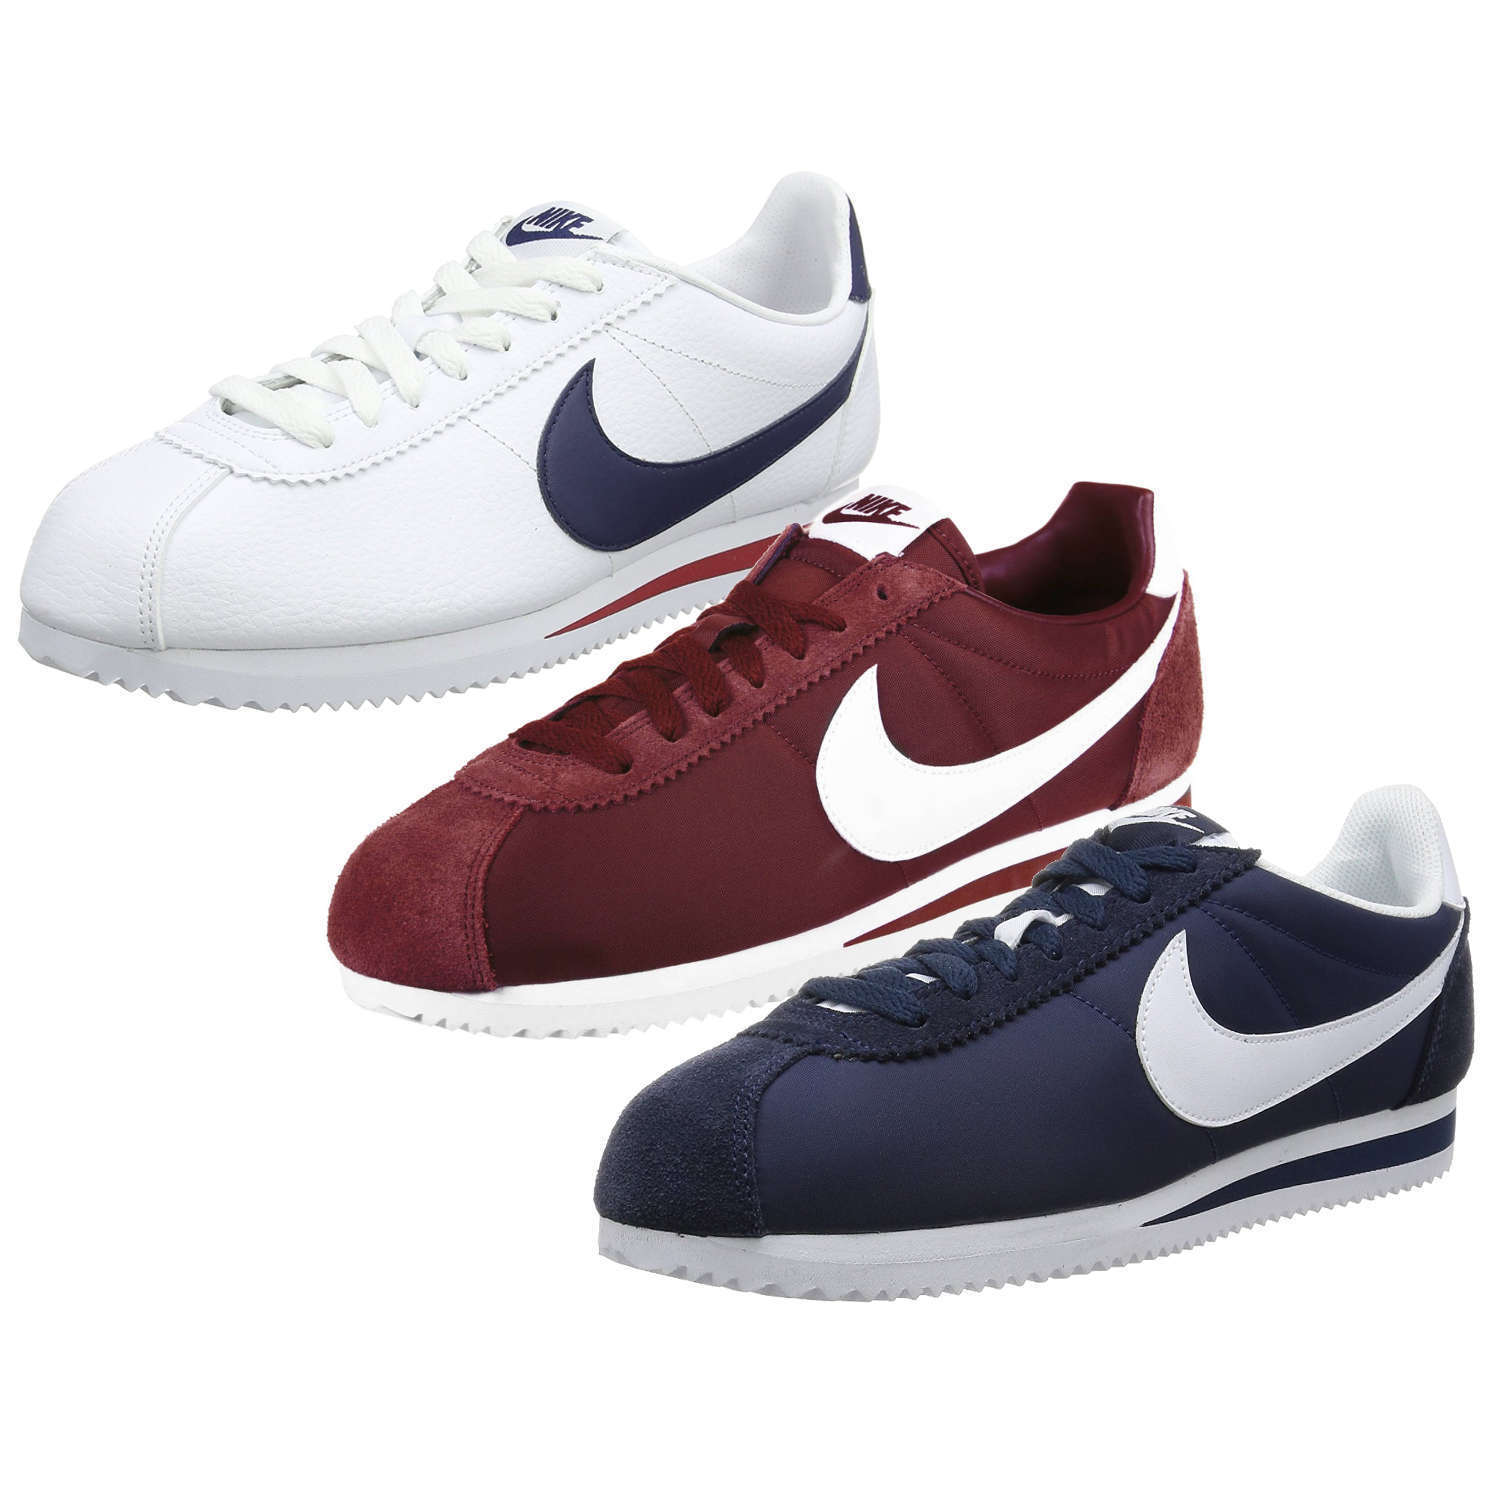 Details zu NIKE CLASSIC CORTEZ NYLON LEATHER MEN SNEAKERS TRAINERS SPORT SHOES NEW